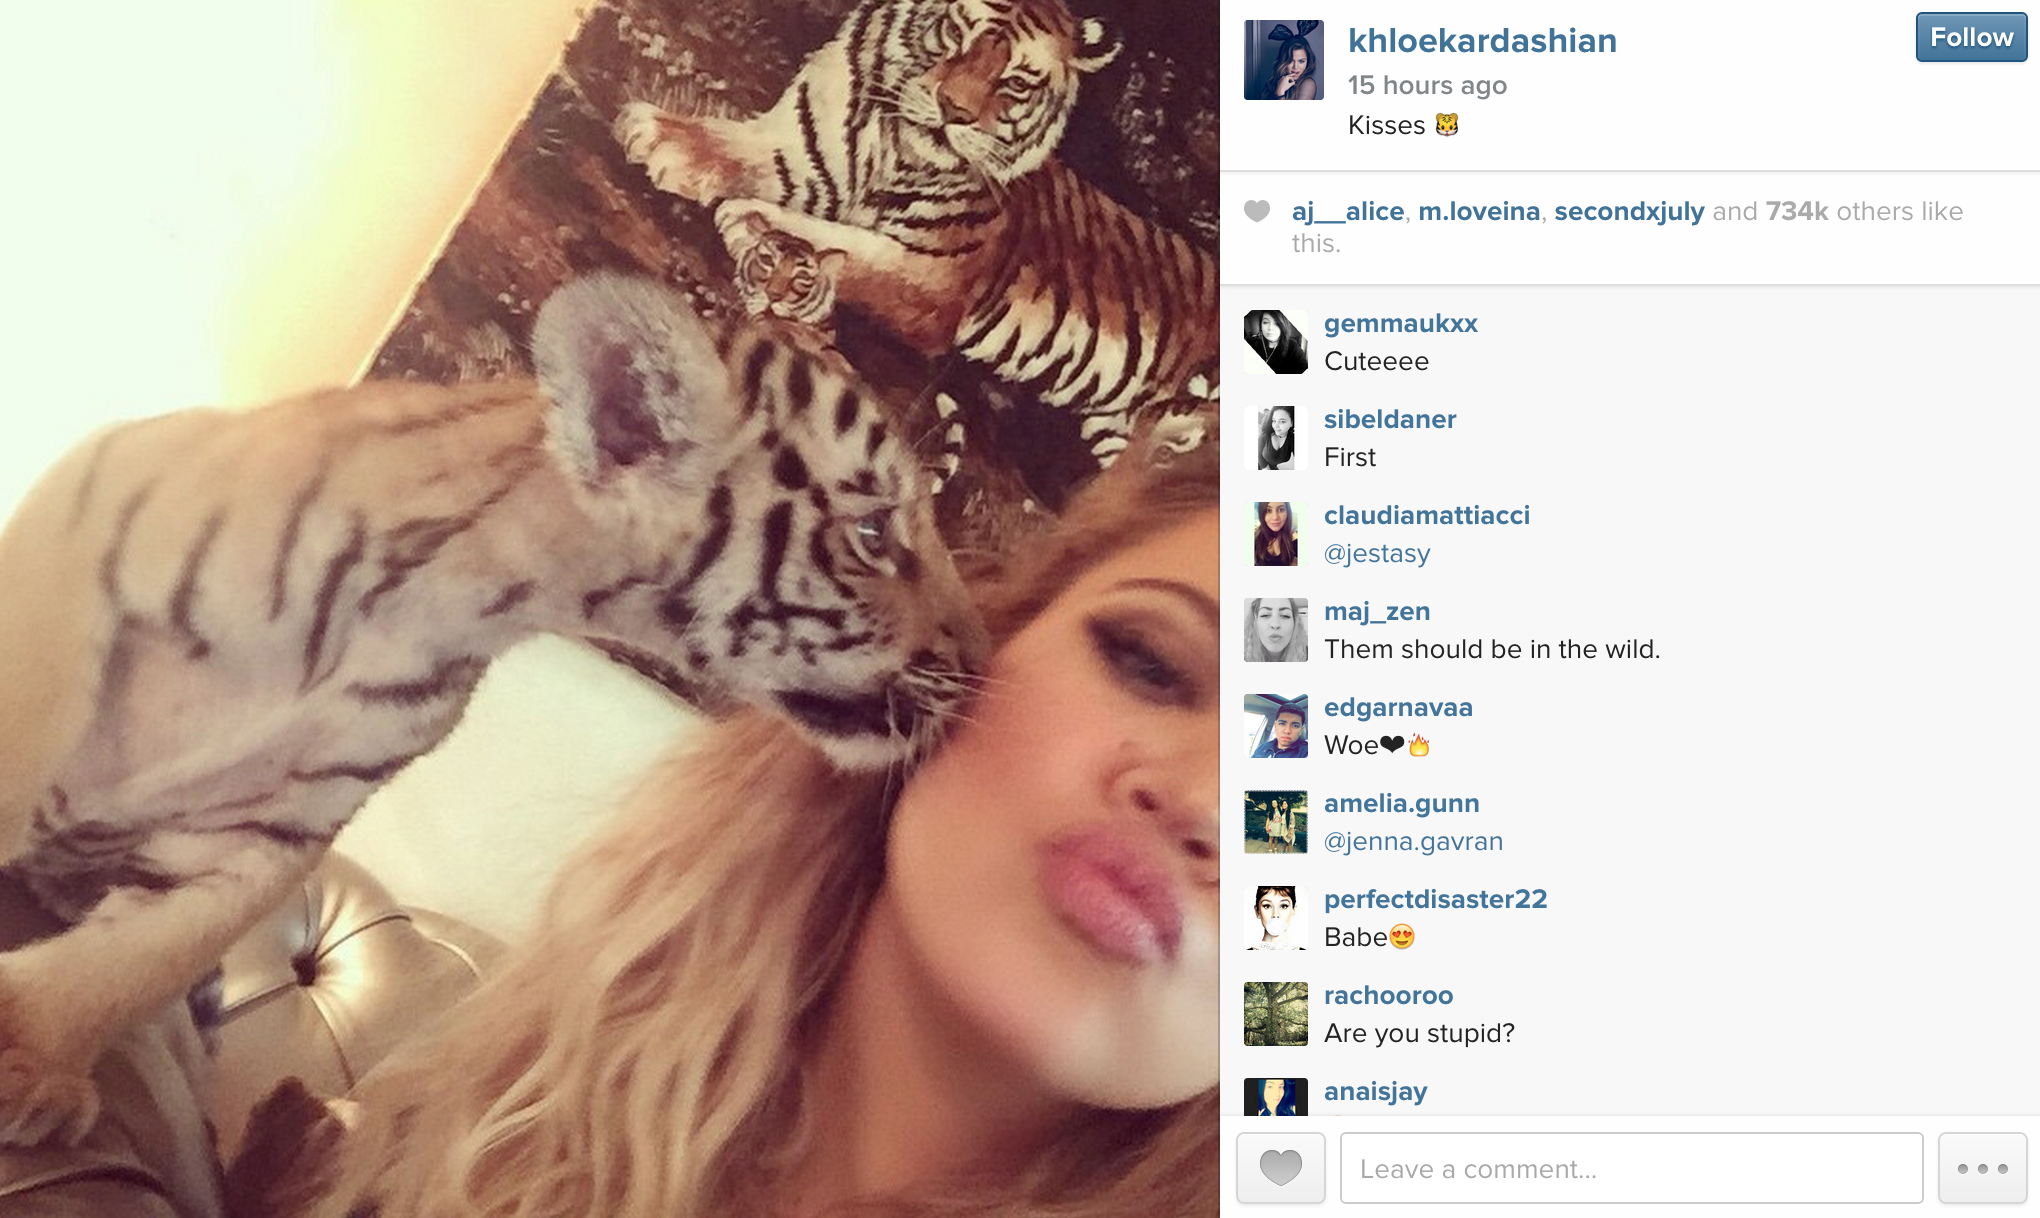 Animal rights activists roar with anger over Khloe Kardashian's Dubai tiger selfie!